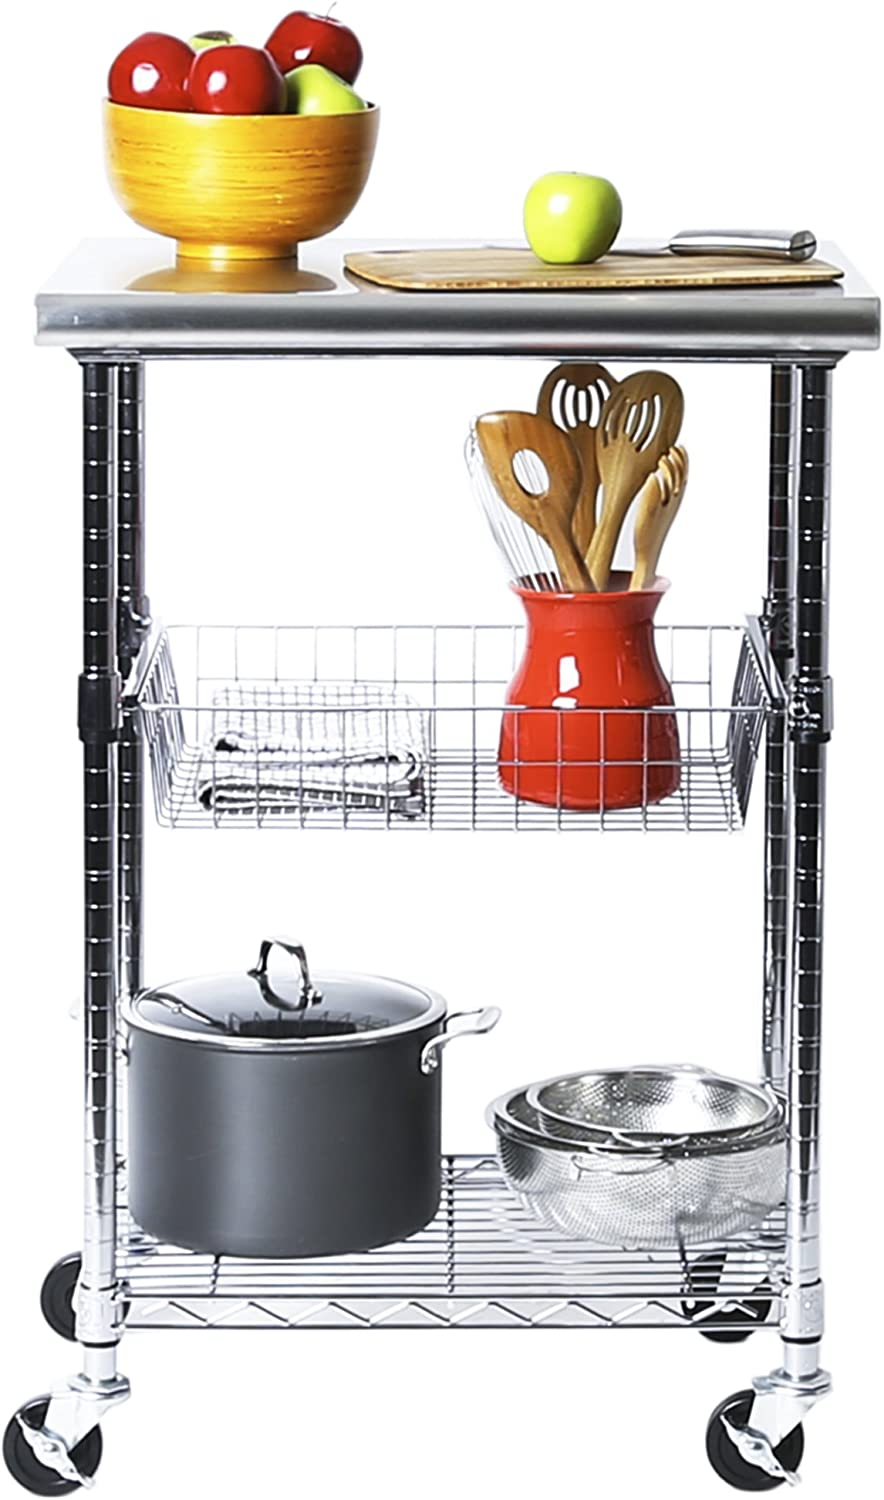 Amazon Com Seville Classics Stainless Steel Professional Kitchen Work Table Cart Utility Nsf Certified Storage 24 W X 20 D X 36 H Chrome Home Kitchen